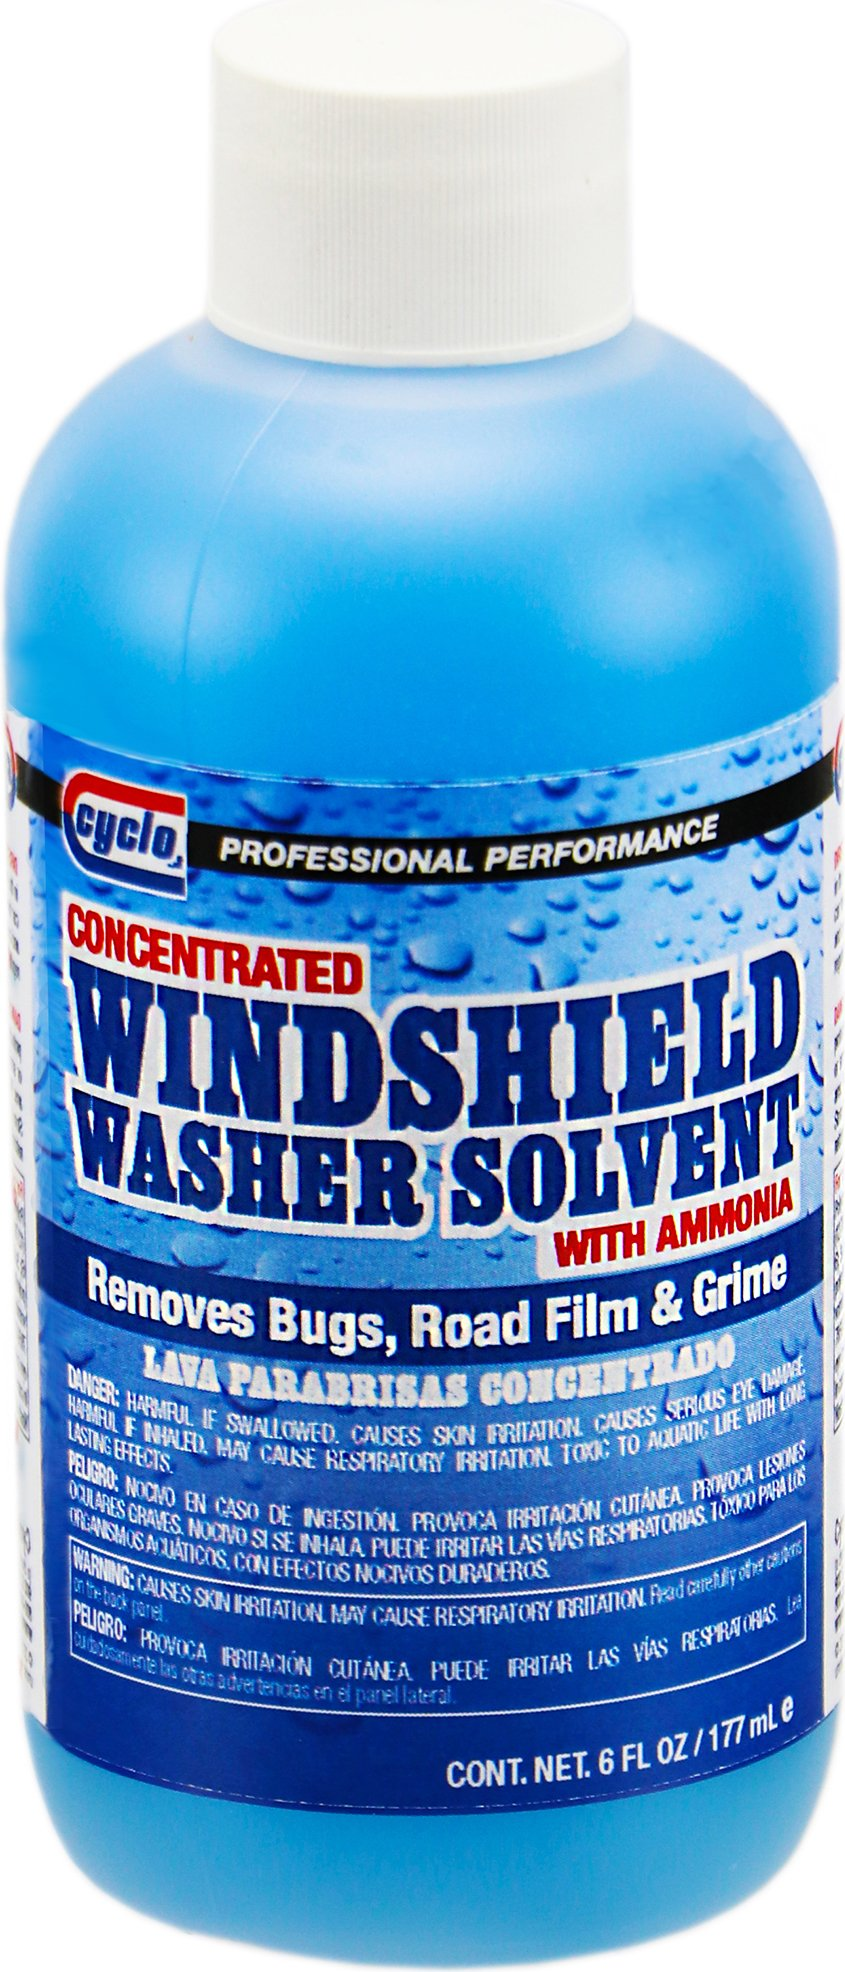 Niteo Cyclo Concentrated Windshield Washer Solvent with Ammonia, 6 fl oz, Case of 24